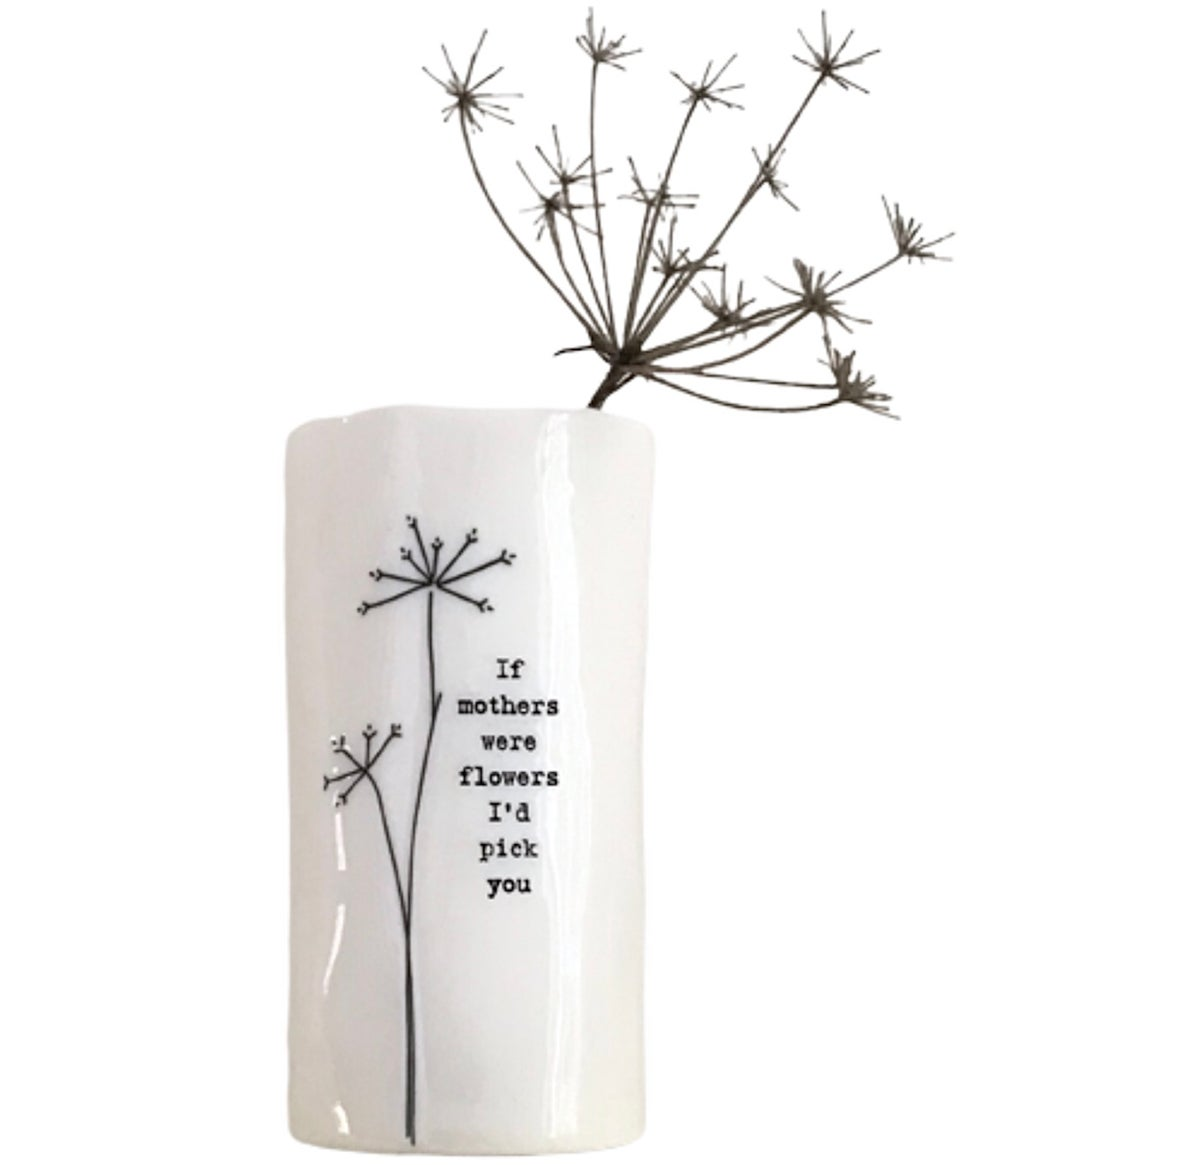 Image of East of India Porcelain Vase If Mothers Were Flowers